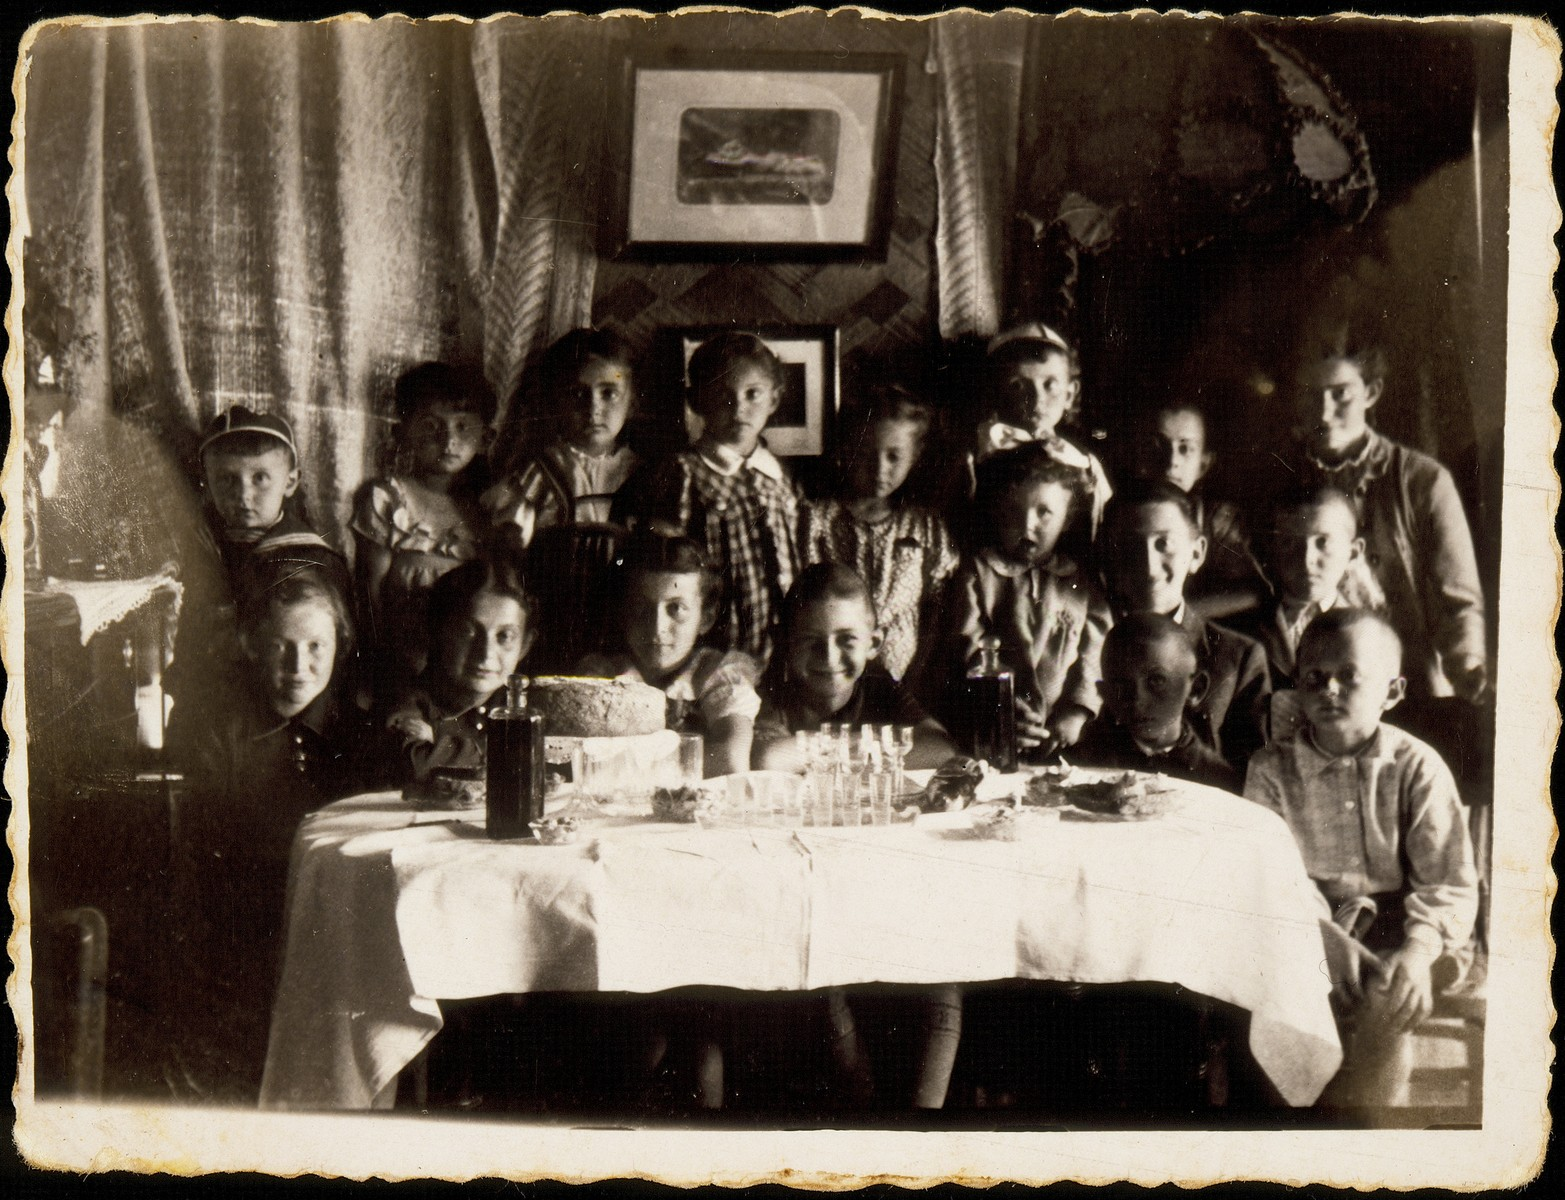 Children gather around a table at an end of the school party, in honor of Yitzhak Sonenson.  The party took place in the Sonenson's living room only days before the German invasion.    Sitting in the center is Yitzhak Sonenson.  Second from right is Meir (Mulke) Sonenson sitting on the lap of Avigdor Katz.  Second from left is Gittele Sonenson and at the far left is Hayya Tawlitski. Standing at the extreme right is Altke Tawlitski.  Yaffa Sonenson is in the checkered dress, and on her right is Shirale Kaganov.    All the children were murdered during the Holocaust except for Gittele Sonenson who died from TB in the cave where she was hiding, and Yitzhak and Yaffa Sonenson survived the Holocaust in hiding. The house was totally destroyed when the local population looked for hidden loot.